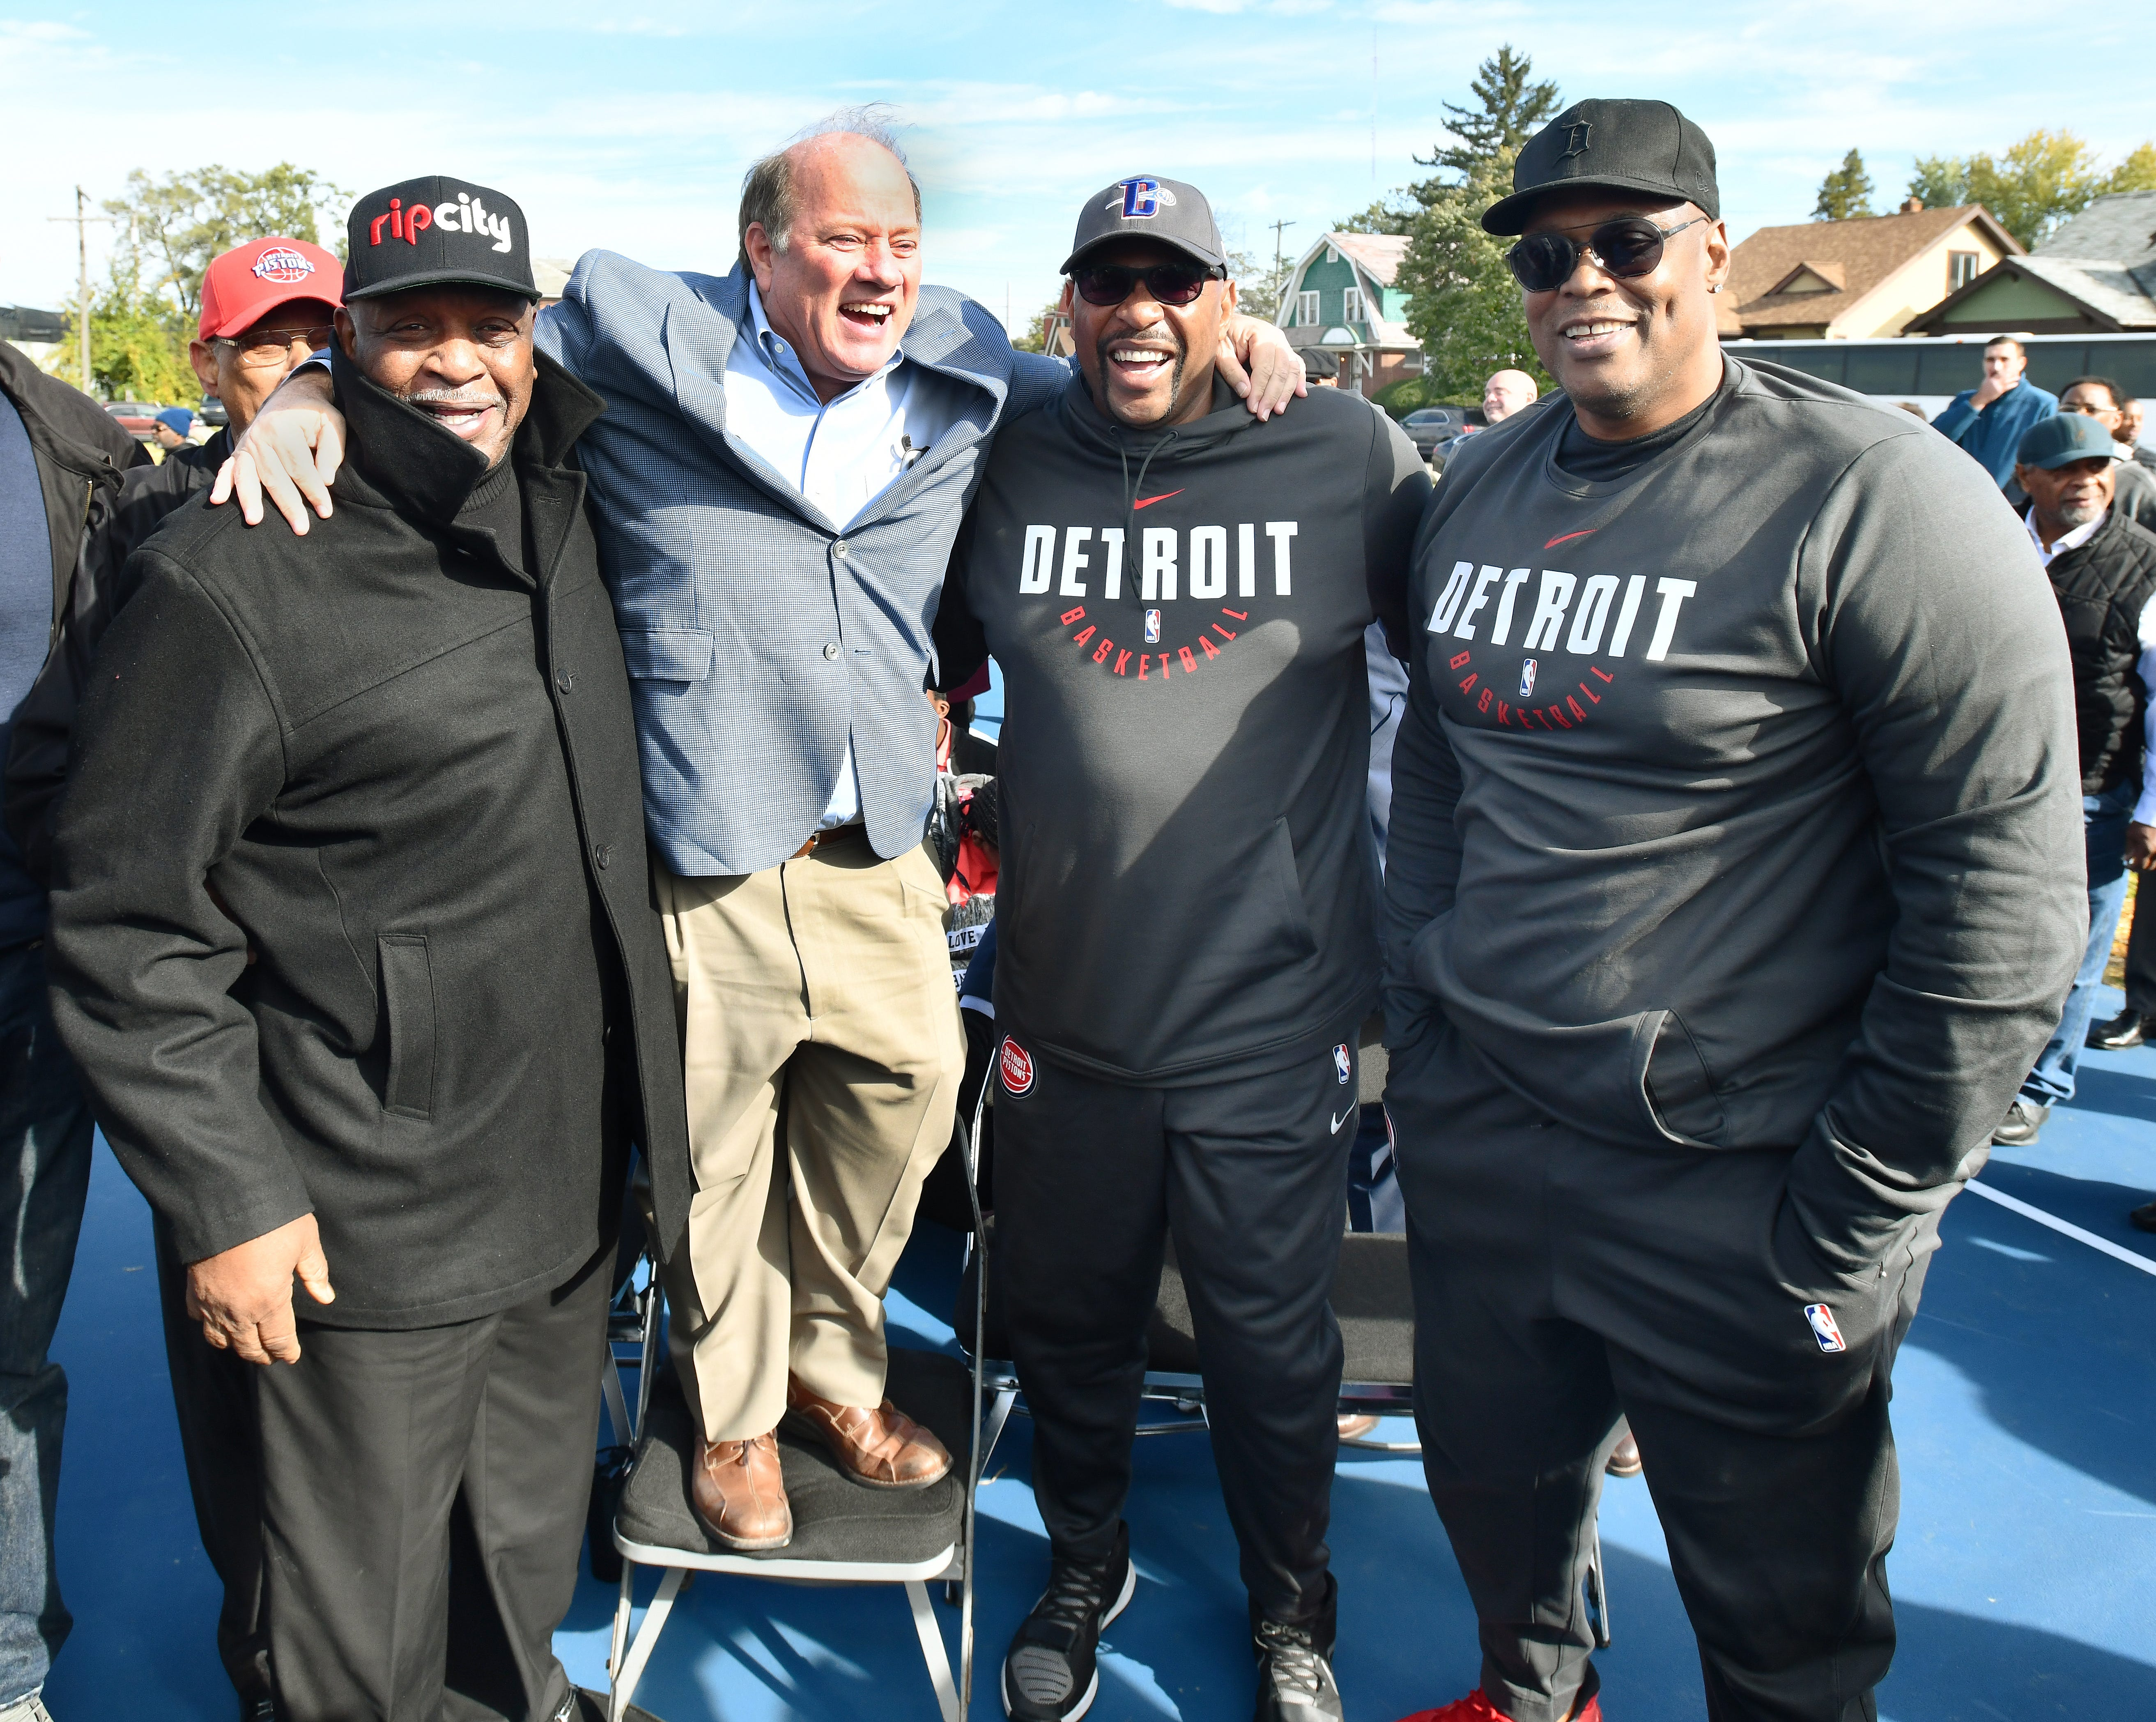 """Possibly the new """"Bad Boys"""" of Detroit, from left, 1969 Detroit Pistons draft pick  Willie Norwood; two-term Detroit Mayor Mike Duggan, who climbed up on a folding chair to get in the picture; two-time NBA Champion Earl """"The Twirl"""" Cureton, and original """"Bad Boy,"""" 1989 NBA Champion Rick Mahorn.  The mayor and former Pistons attended the unveiling of the first of 60 renovated basketball courts in 50 city parks, Friday."""